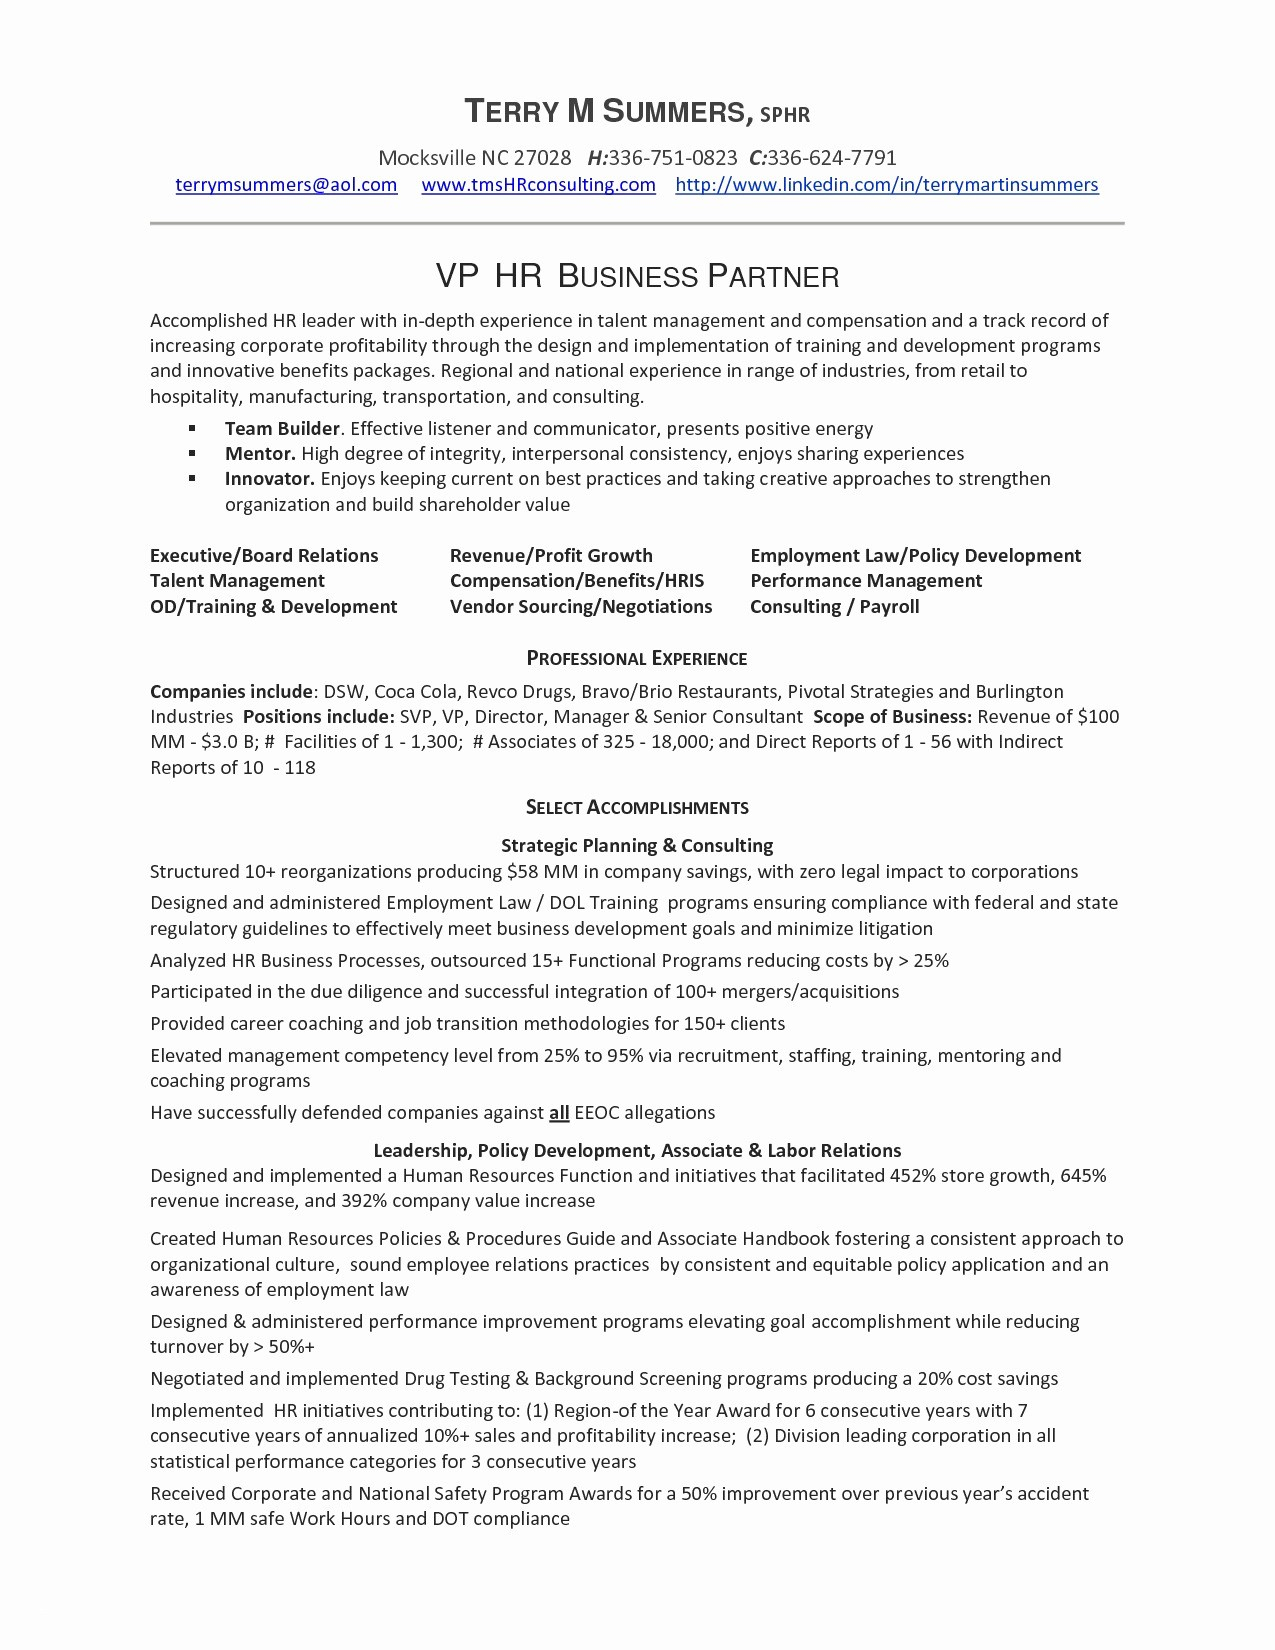 Resume for Entry Level Electrical Engineer - Electrical Engineer Resume Fresh Hr Resume Sample Aurelianmg